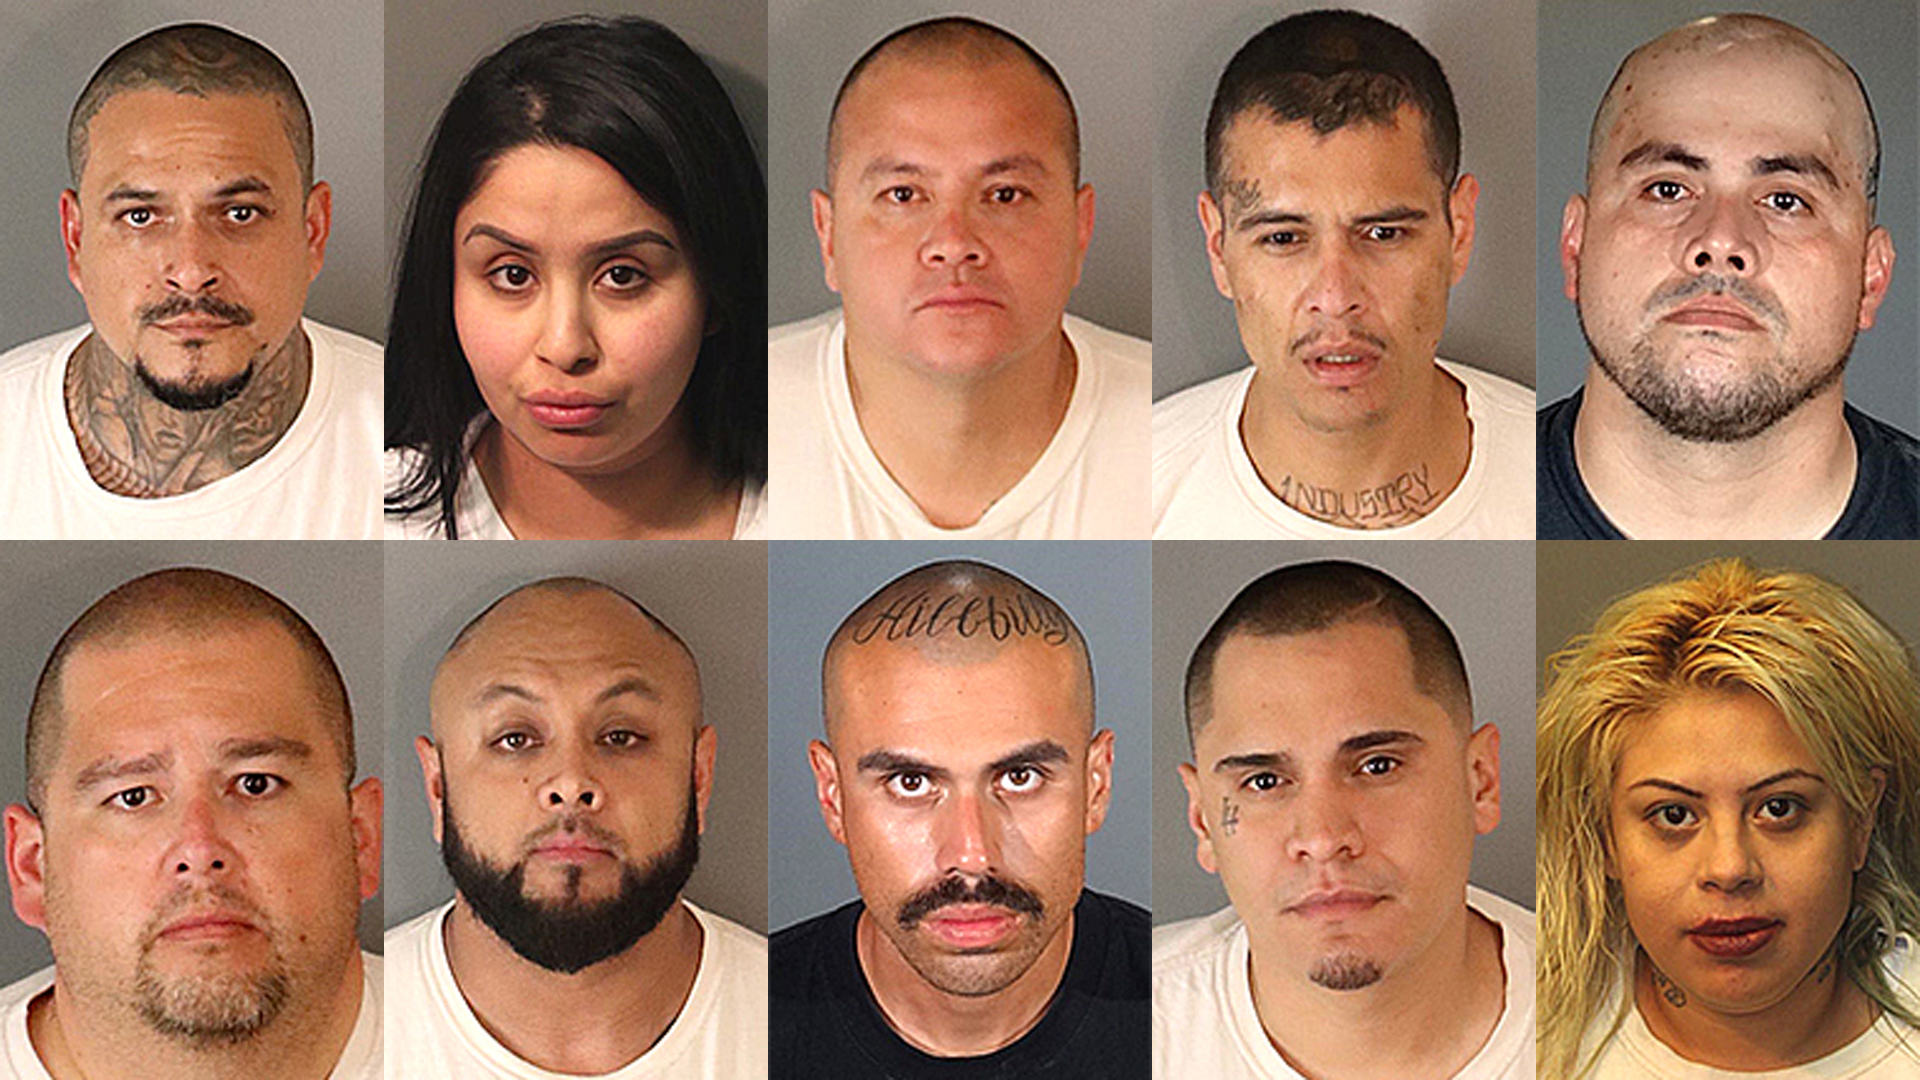 From left to right, top row then bottom row: Rolando Aguilar, 40, of Compton; Brandy Aleman, 29, of Grand Terrace; Thomas Barragan, 47, of Rialto; Kevin Curiel, 30, of La Puente; Jose Delgado, 35, of West Covina; Daniel Lopez, 43, multiple hometowns; Jose Juan Marrero Colon, 37, of Grand Terrace; Diego Martinez Hispanic, 21, of La Puente; Sean Serrano, 30, of Upland; Elvira Vargas, 27, of West Covina. (Credit: Riverside County Sheriff's Department)